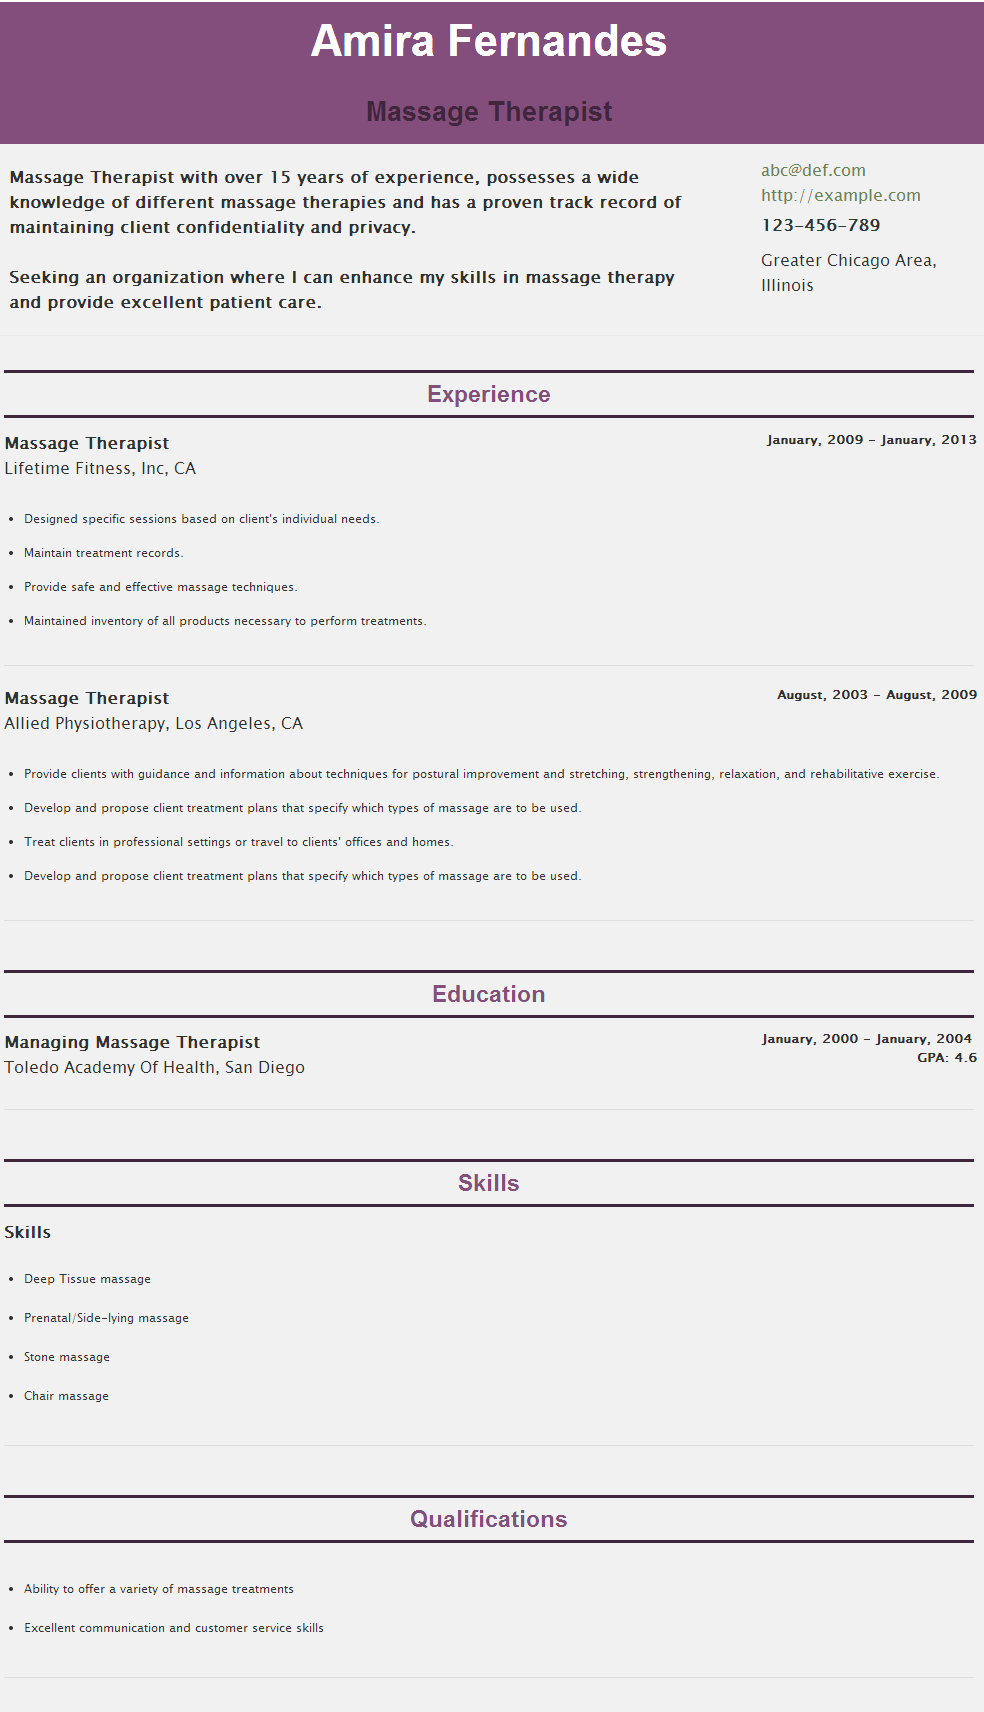 New Massage Therapist Resume Examples Resume For Massage Therapist  Httpshipcvabcrmassage .